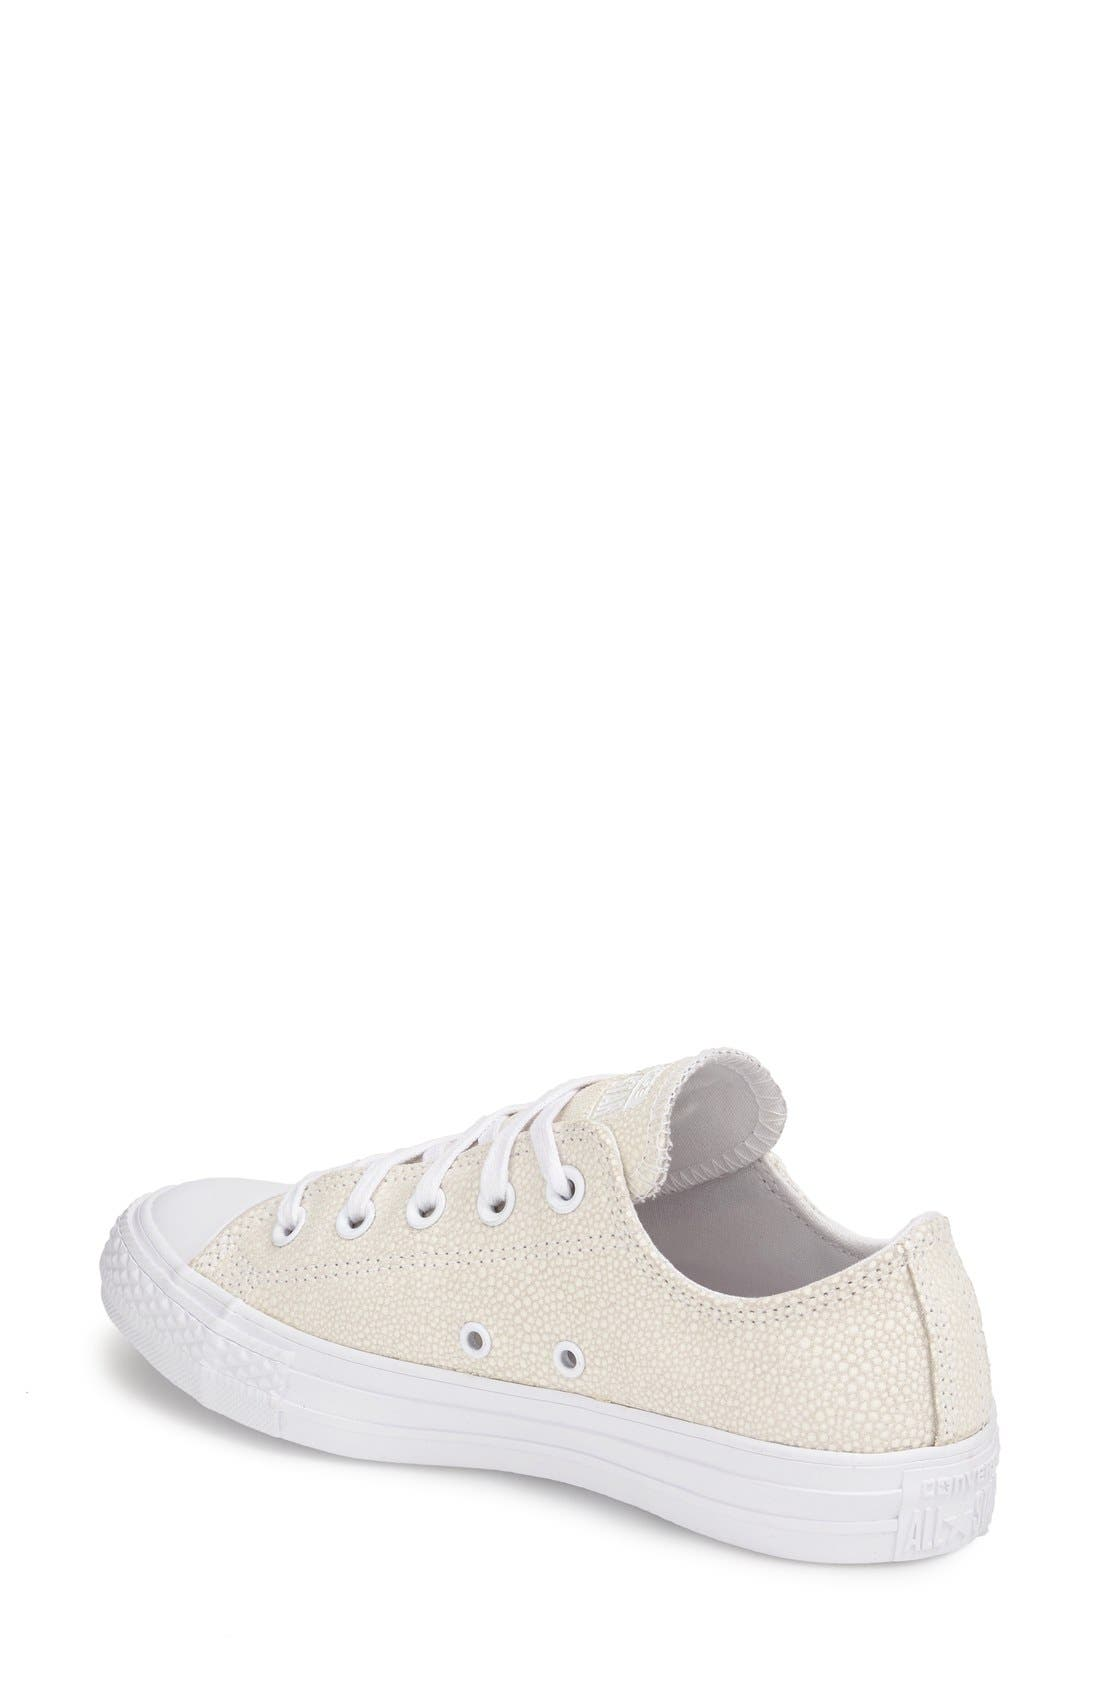 Alternate Image 2  - Converse Chuck Taylor® All Star® 'Stingray - Ox' Low Top Sneaker (Women)